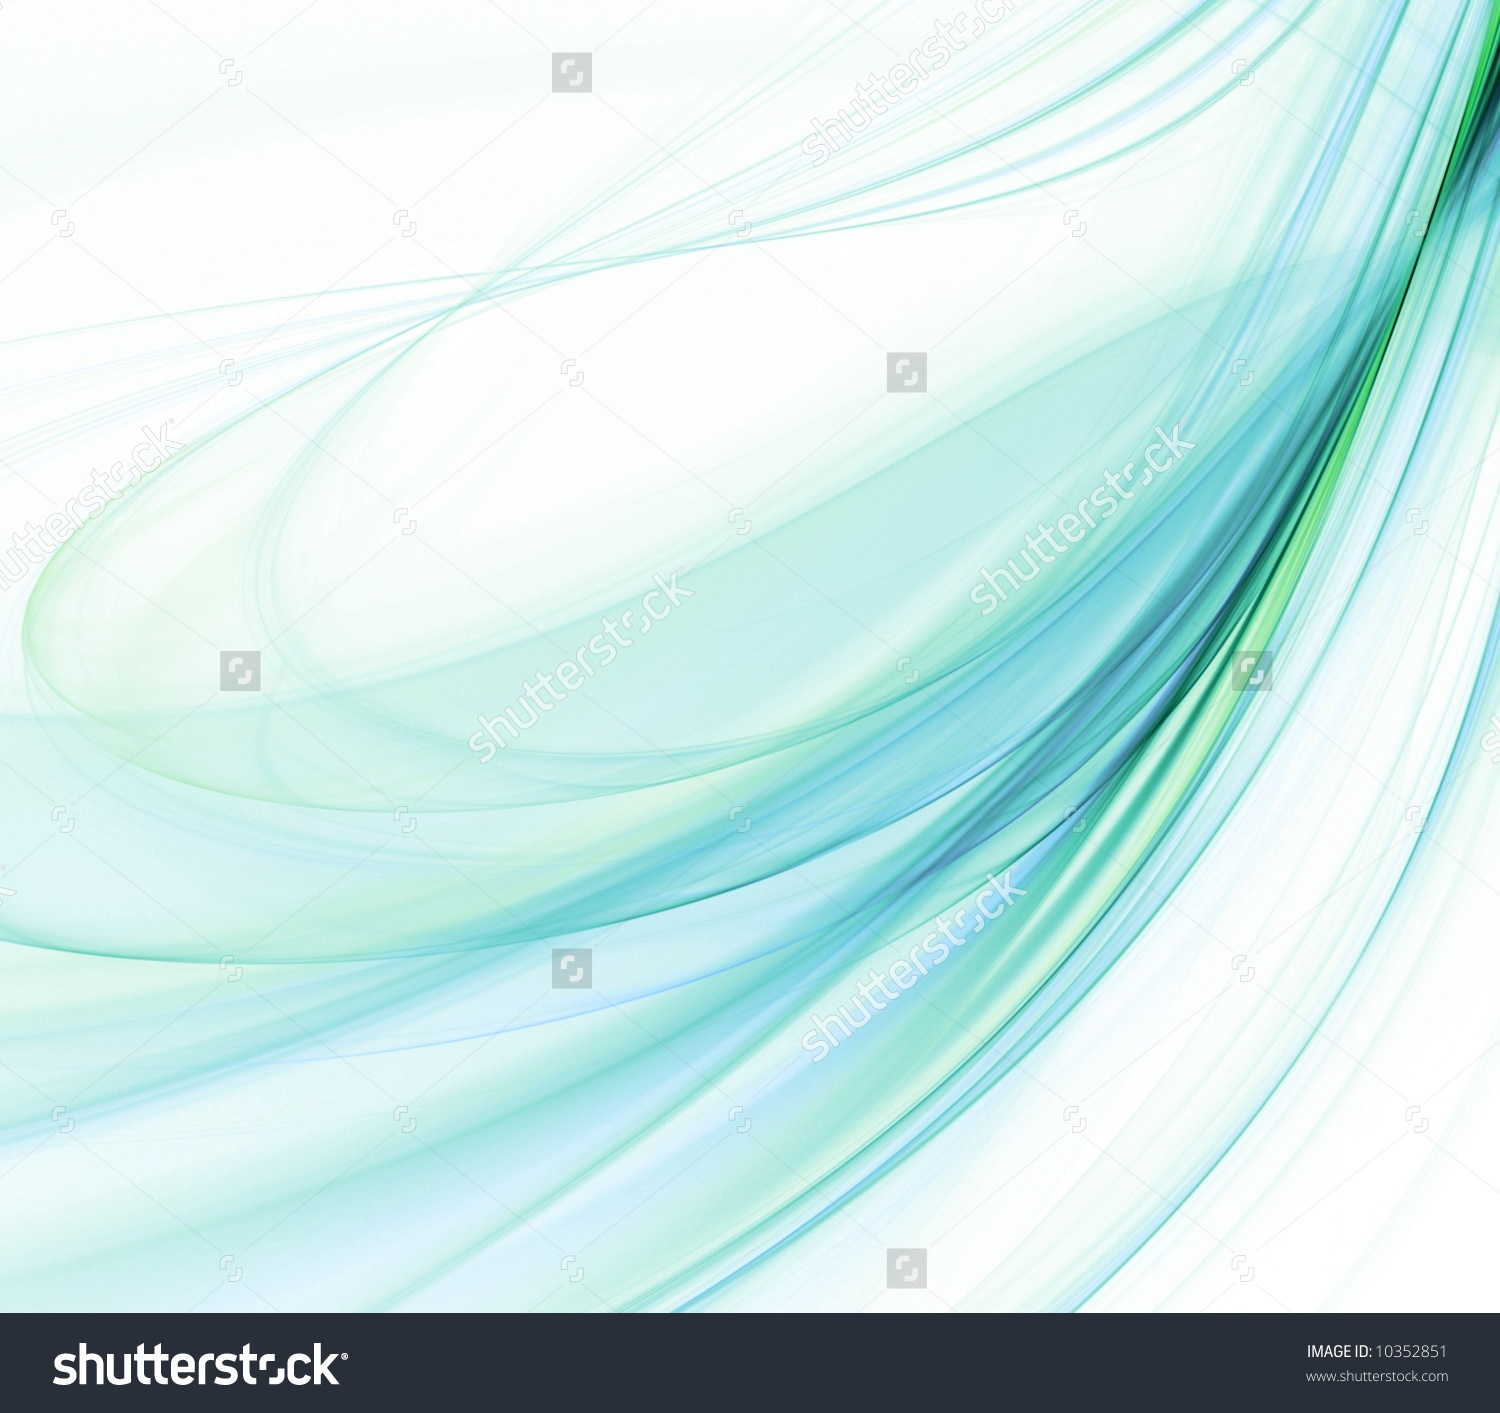 Flowing Light Colored Sheer Fabric Texture Stock Illustration.